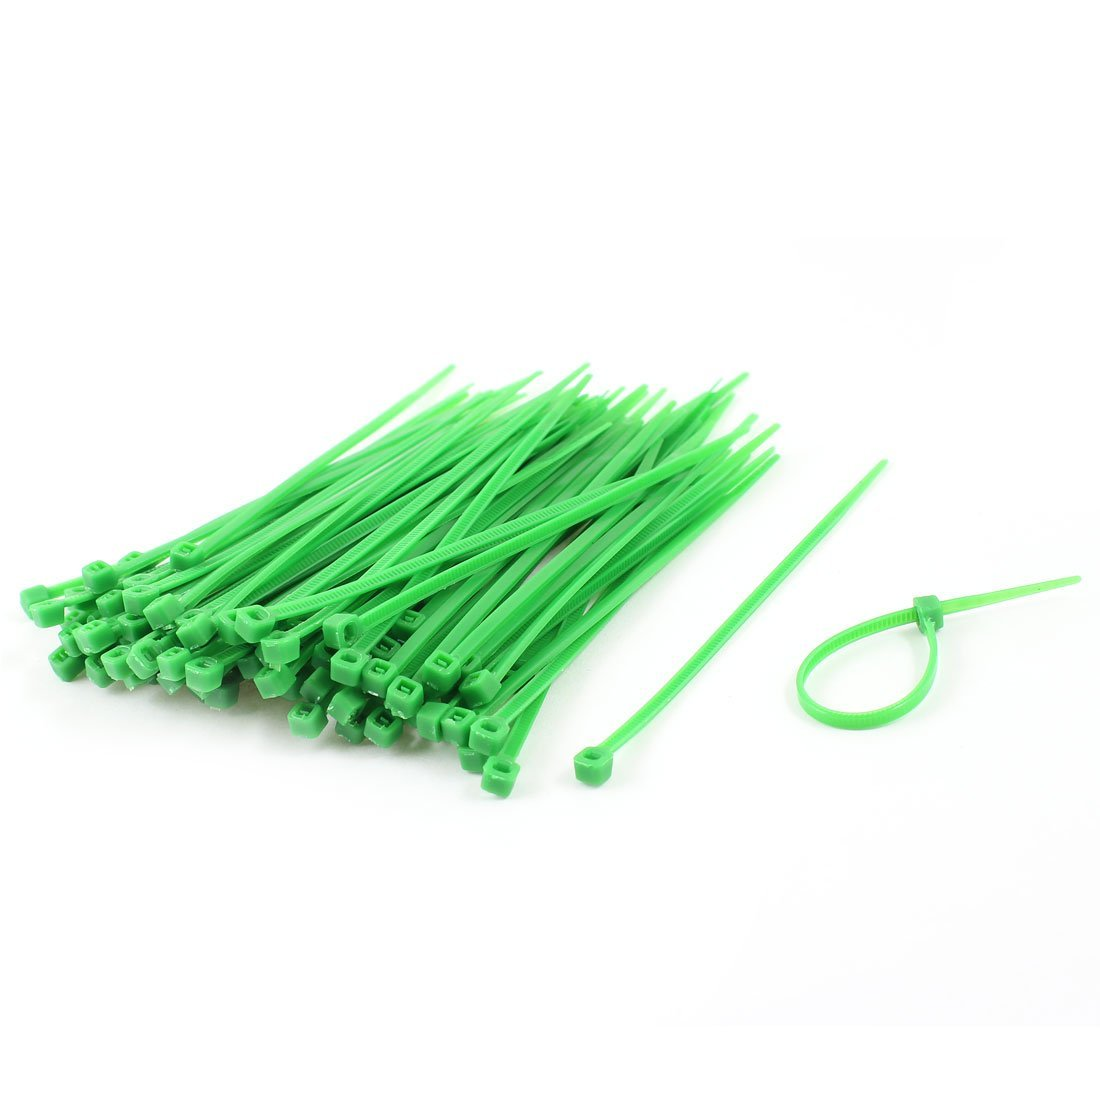 Uxcell Self Locking Cable Ties Wire Cord Strap 3mm x 100mm 100 Pcs Green